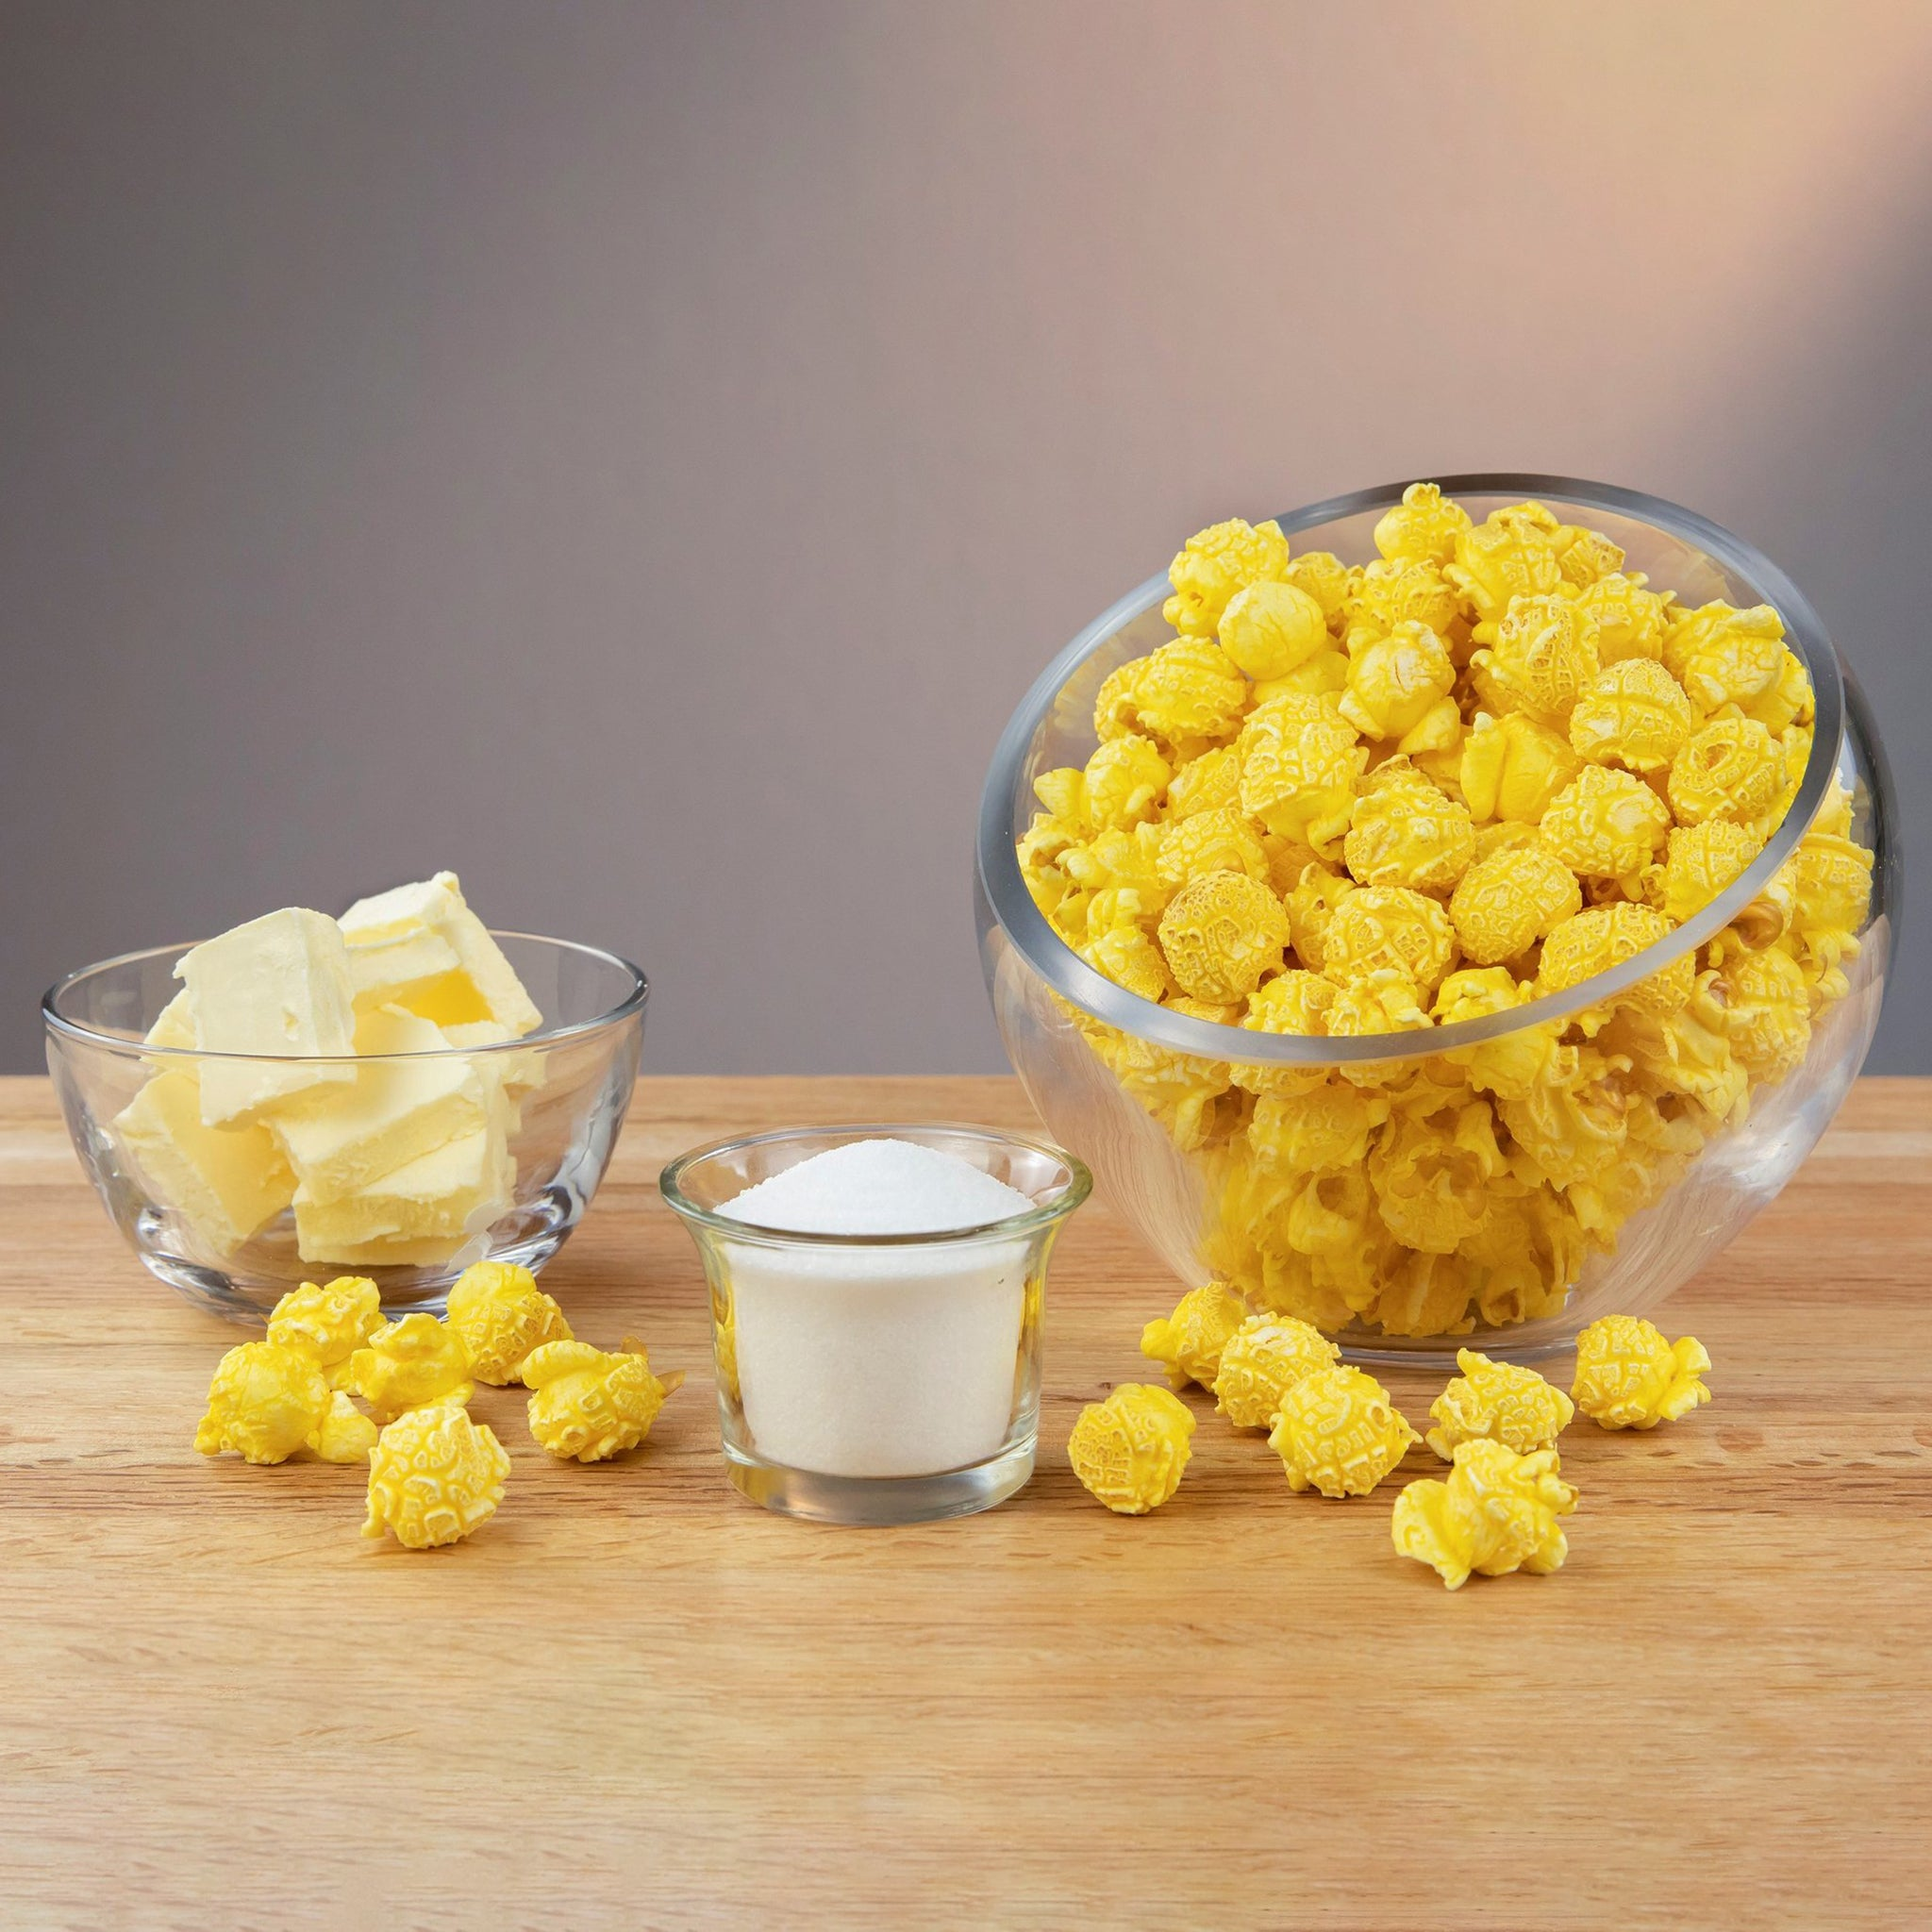 Poppin' Popcorn - Movie Theater Butter (½ gal.)